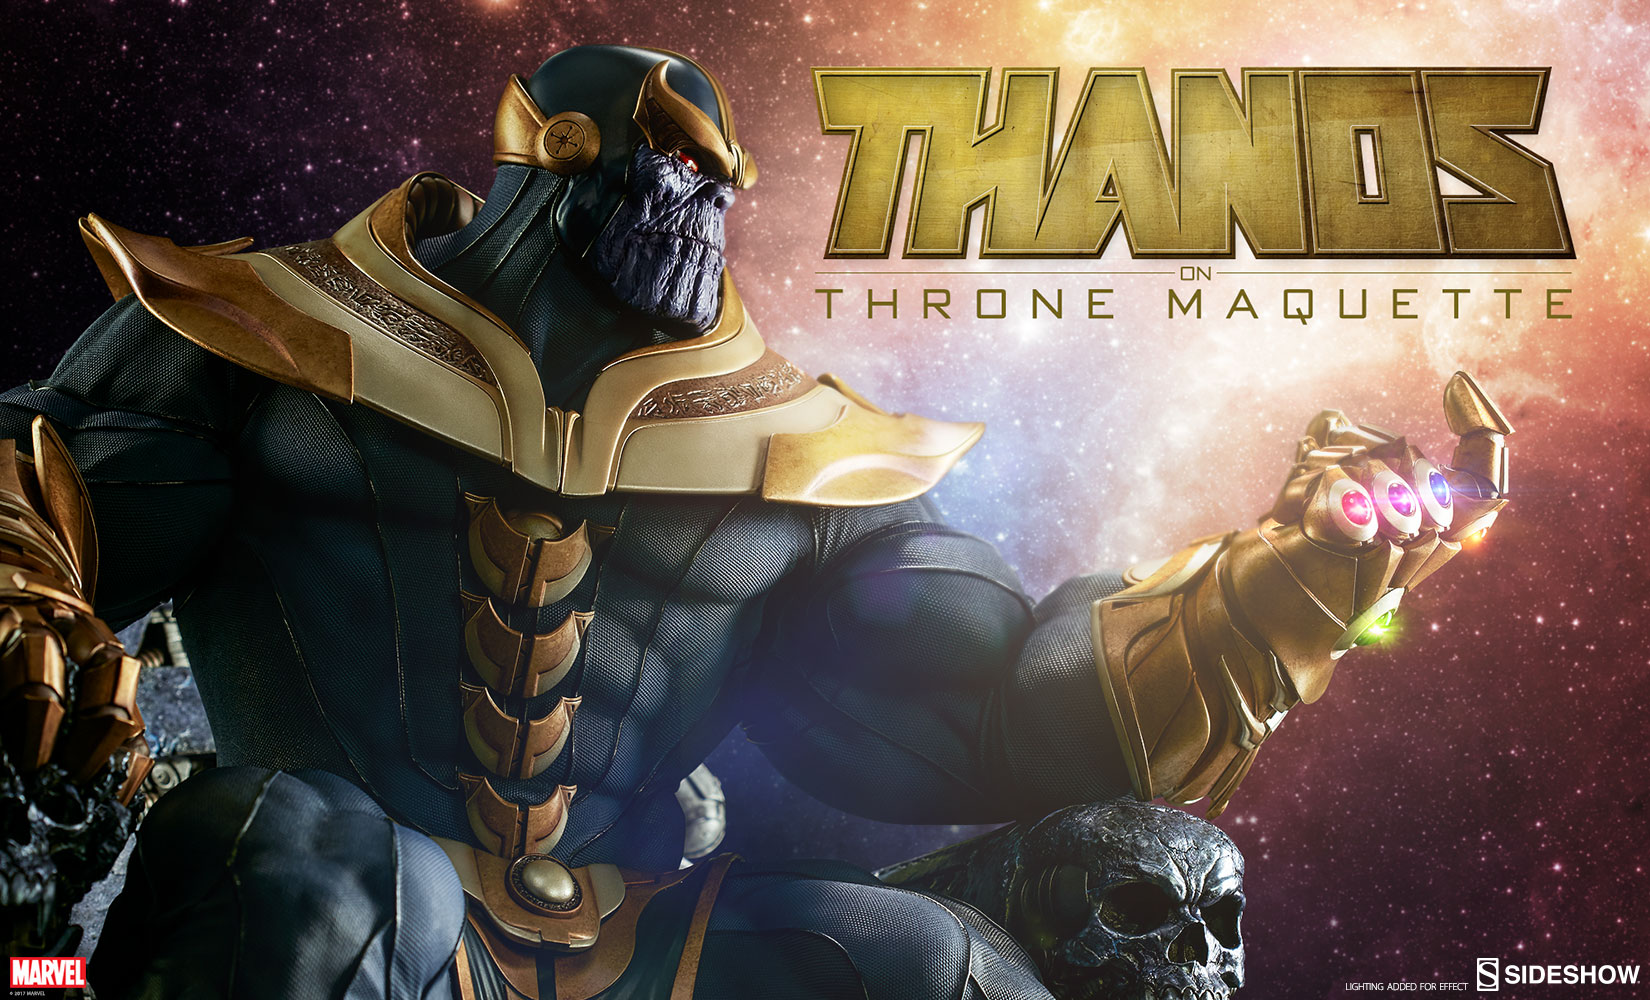 Thanos on Throne - Maquette by Sideshow Collectibles